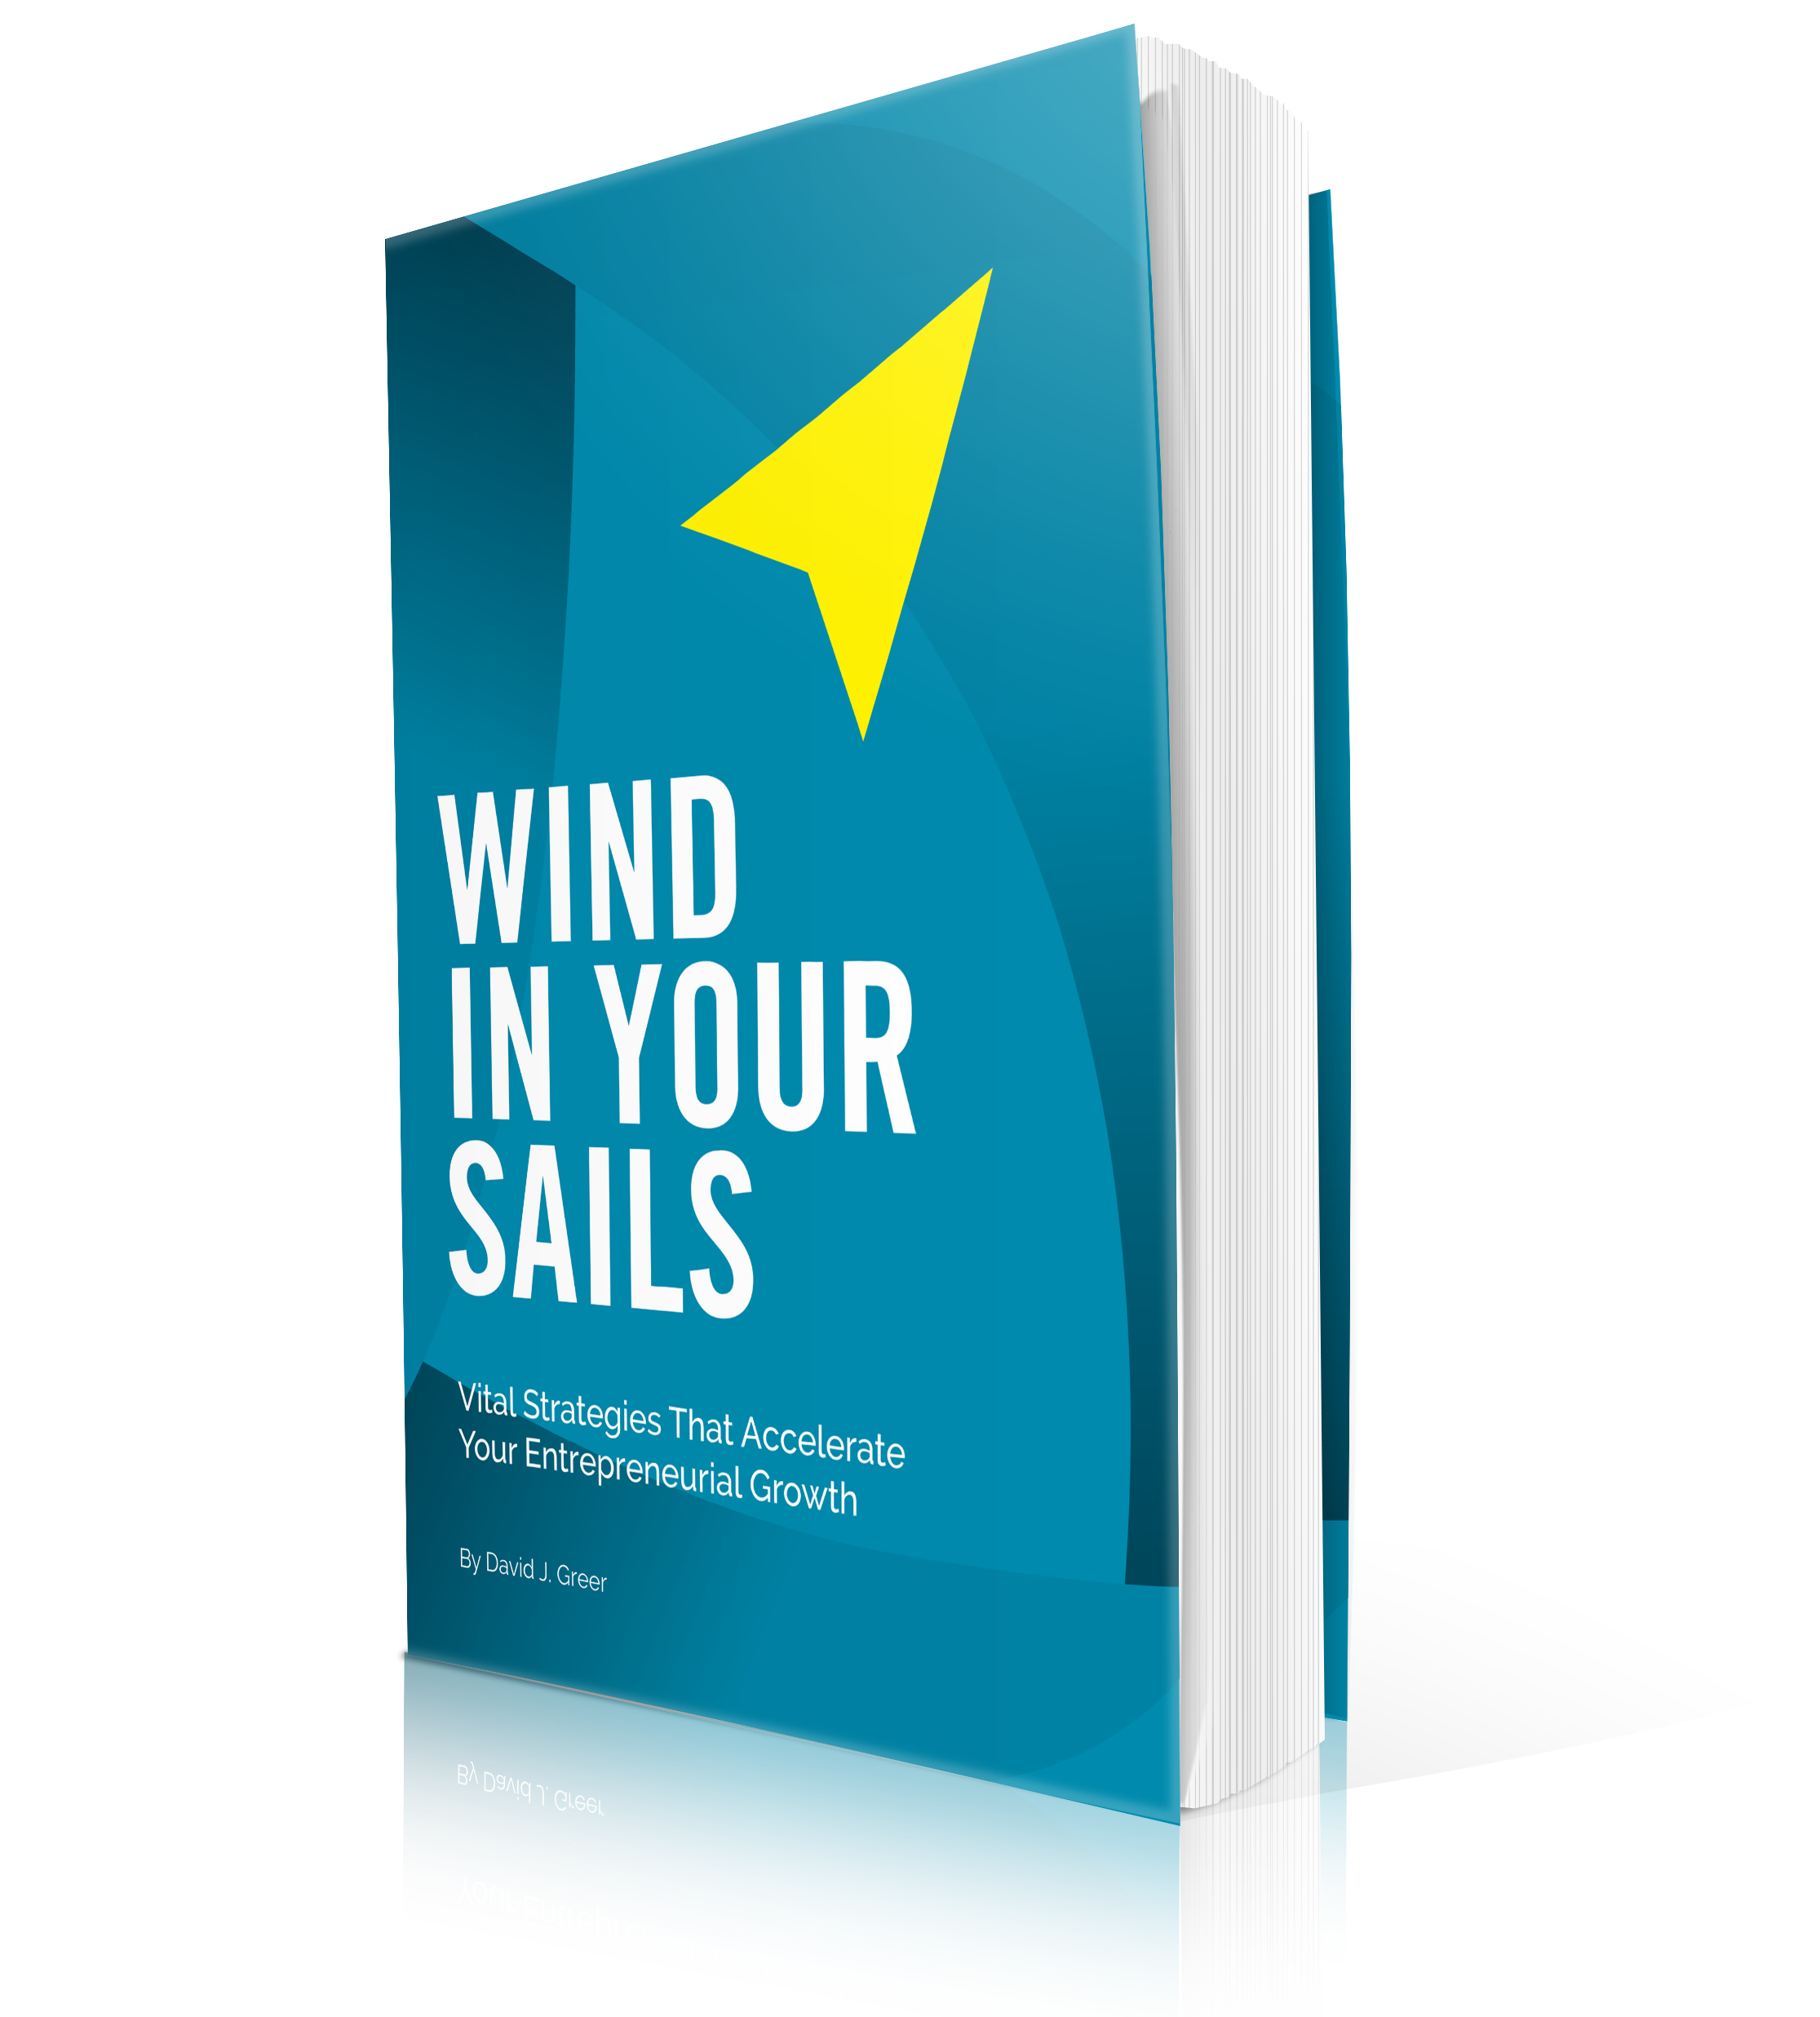 Wind in Your Sails